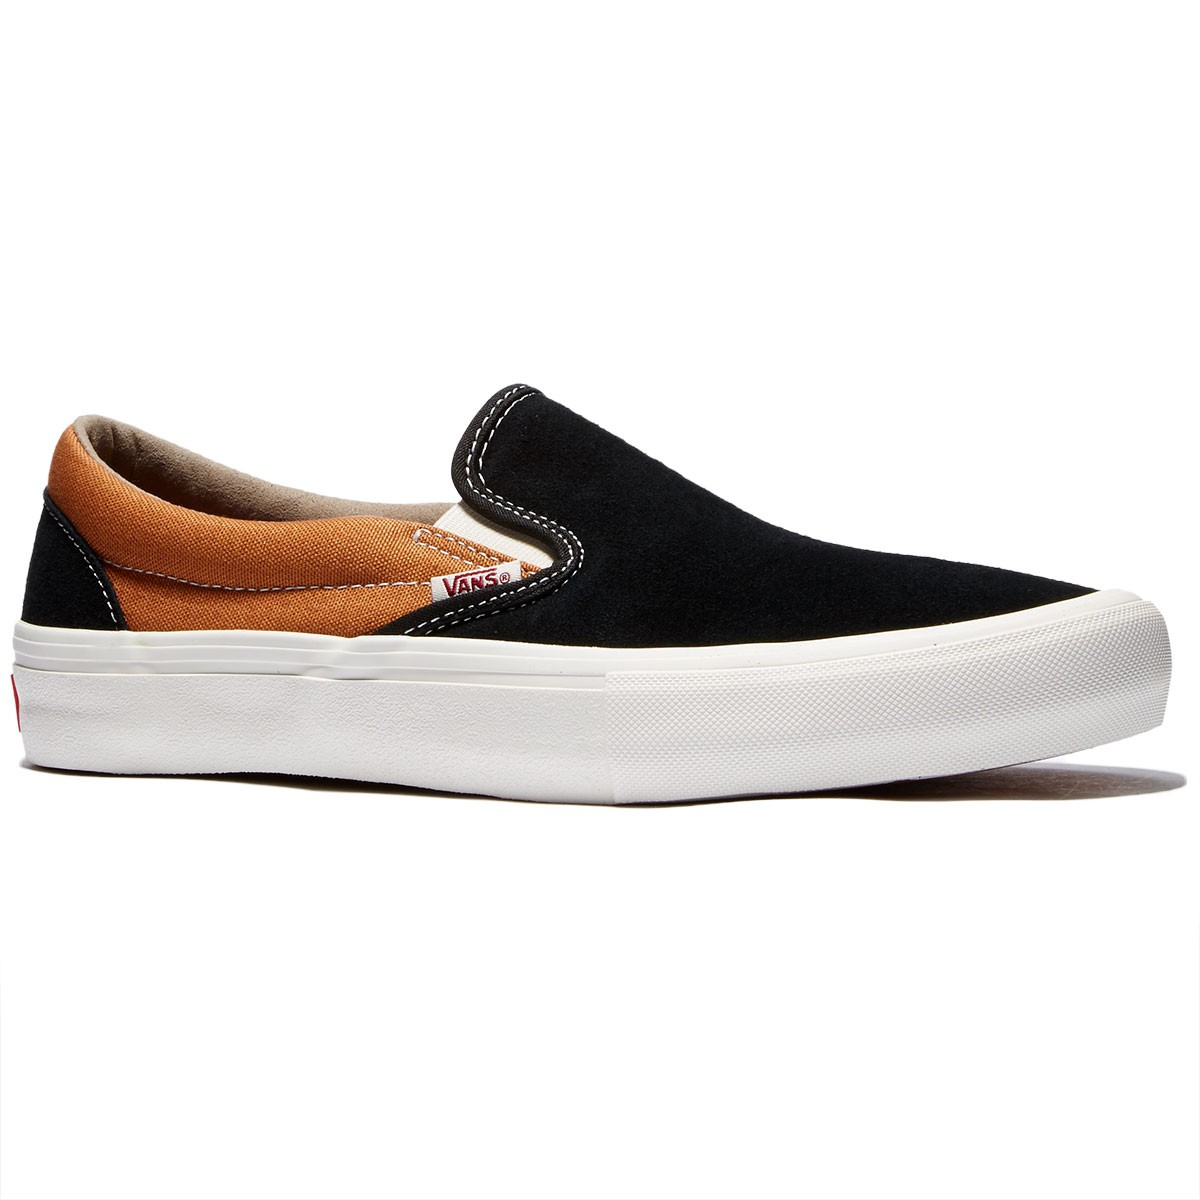 edd05d4f9f Vans Slip-On Pro Shoes